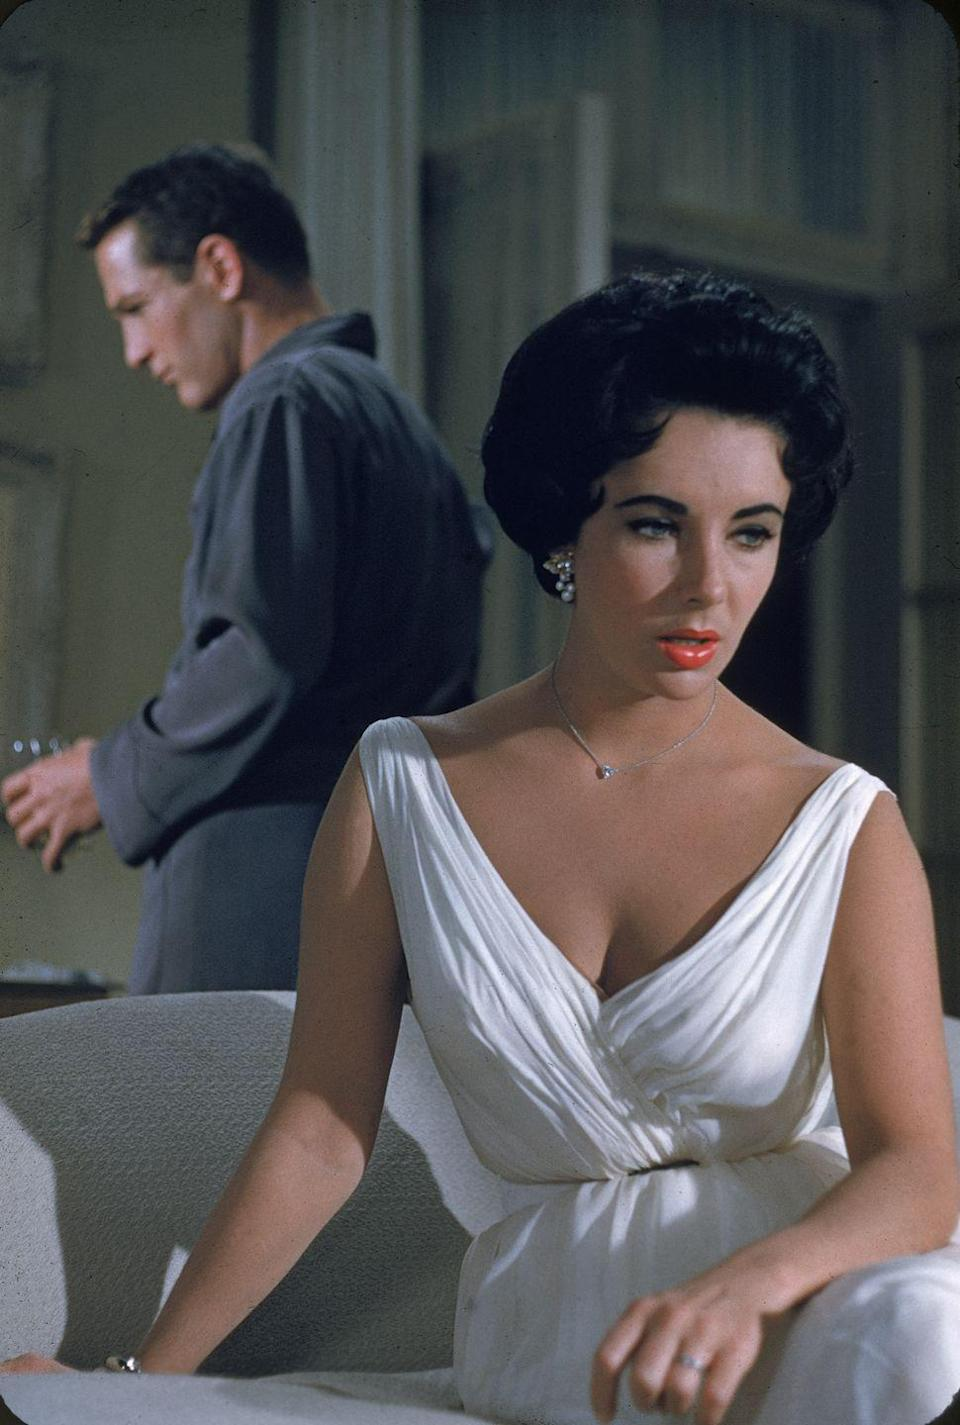 <p>Even off camera, Elizabeth Taylor brought glitz and glamour wherever she went — so her solitaire diamond pendant was actually an understatement in <em>Cat on a Hot Tin Roof</em>. The film star topped off the chic look with a pair of pearl and diamond cluster earrings. </p>